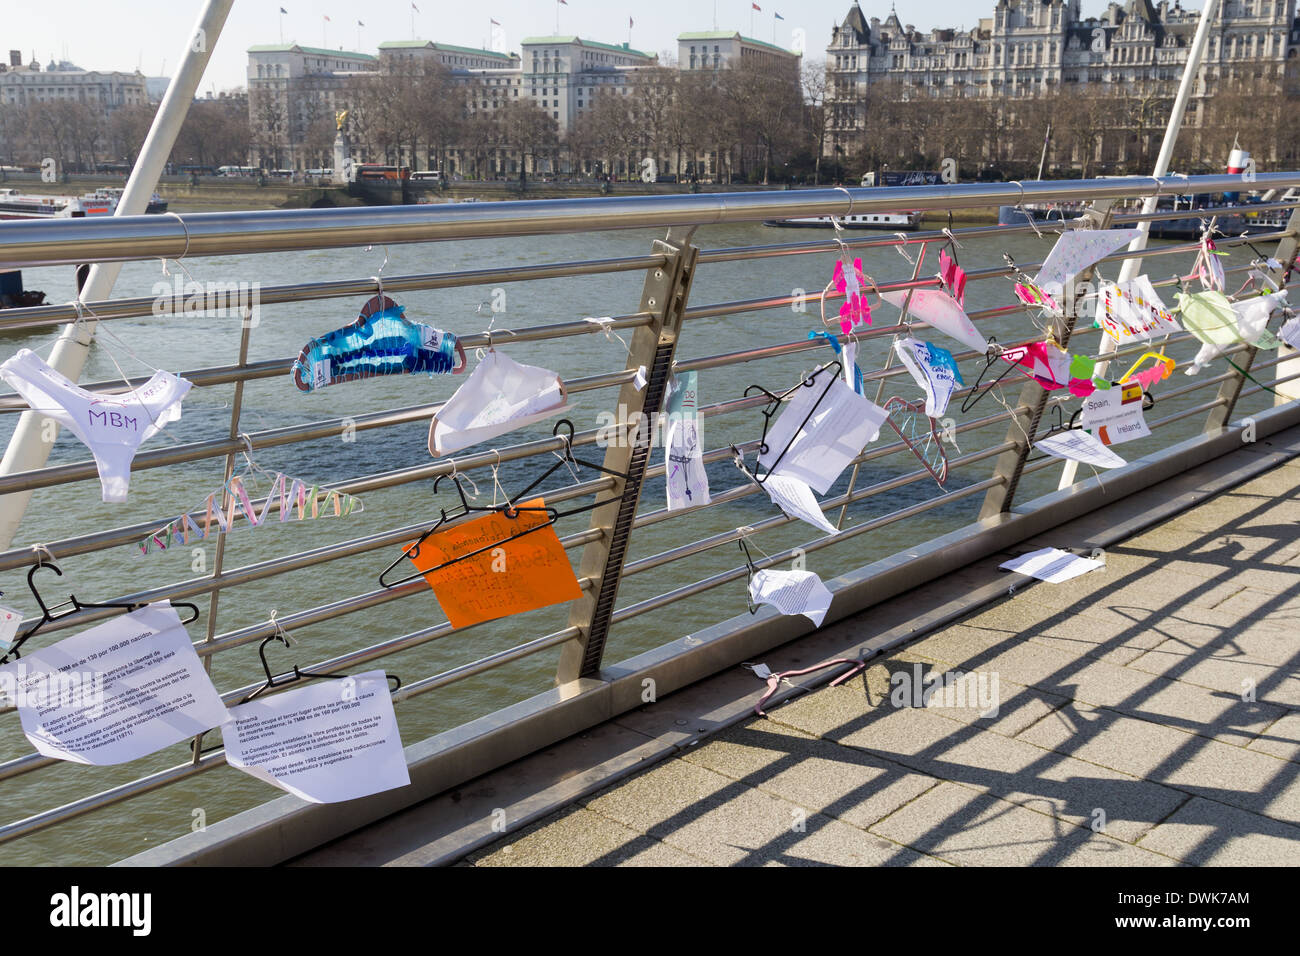 LONDON, UK - 9TH MARCH 2014: Coat Hangers with writing on hanging on Hungerford Bridge in London - Stock Image